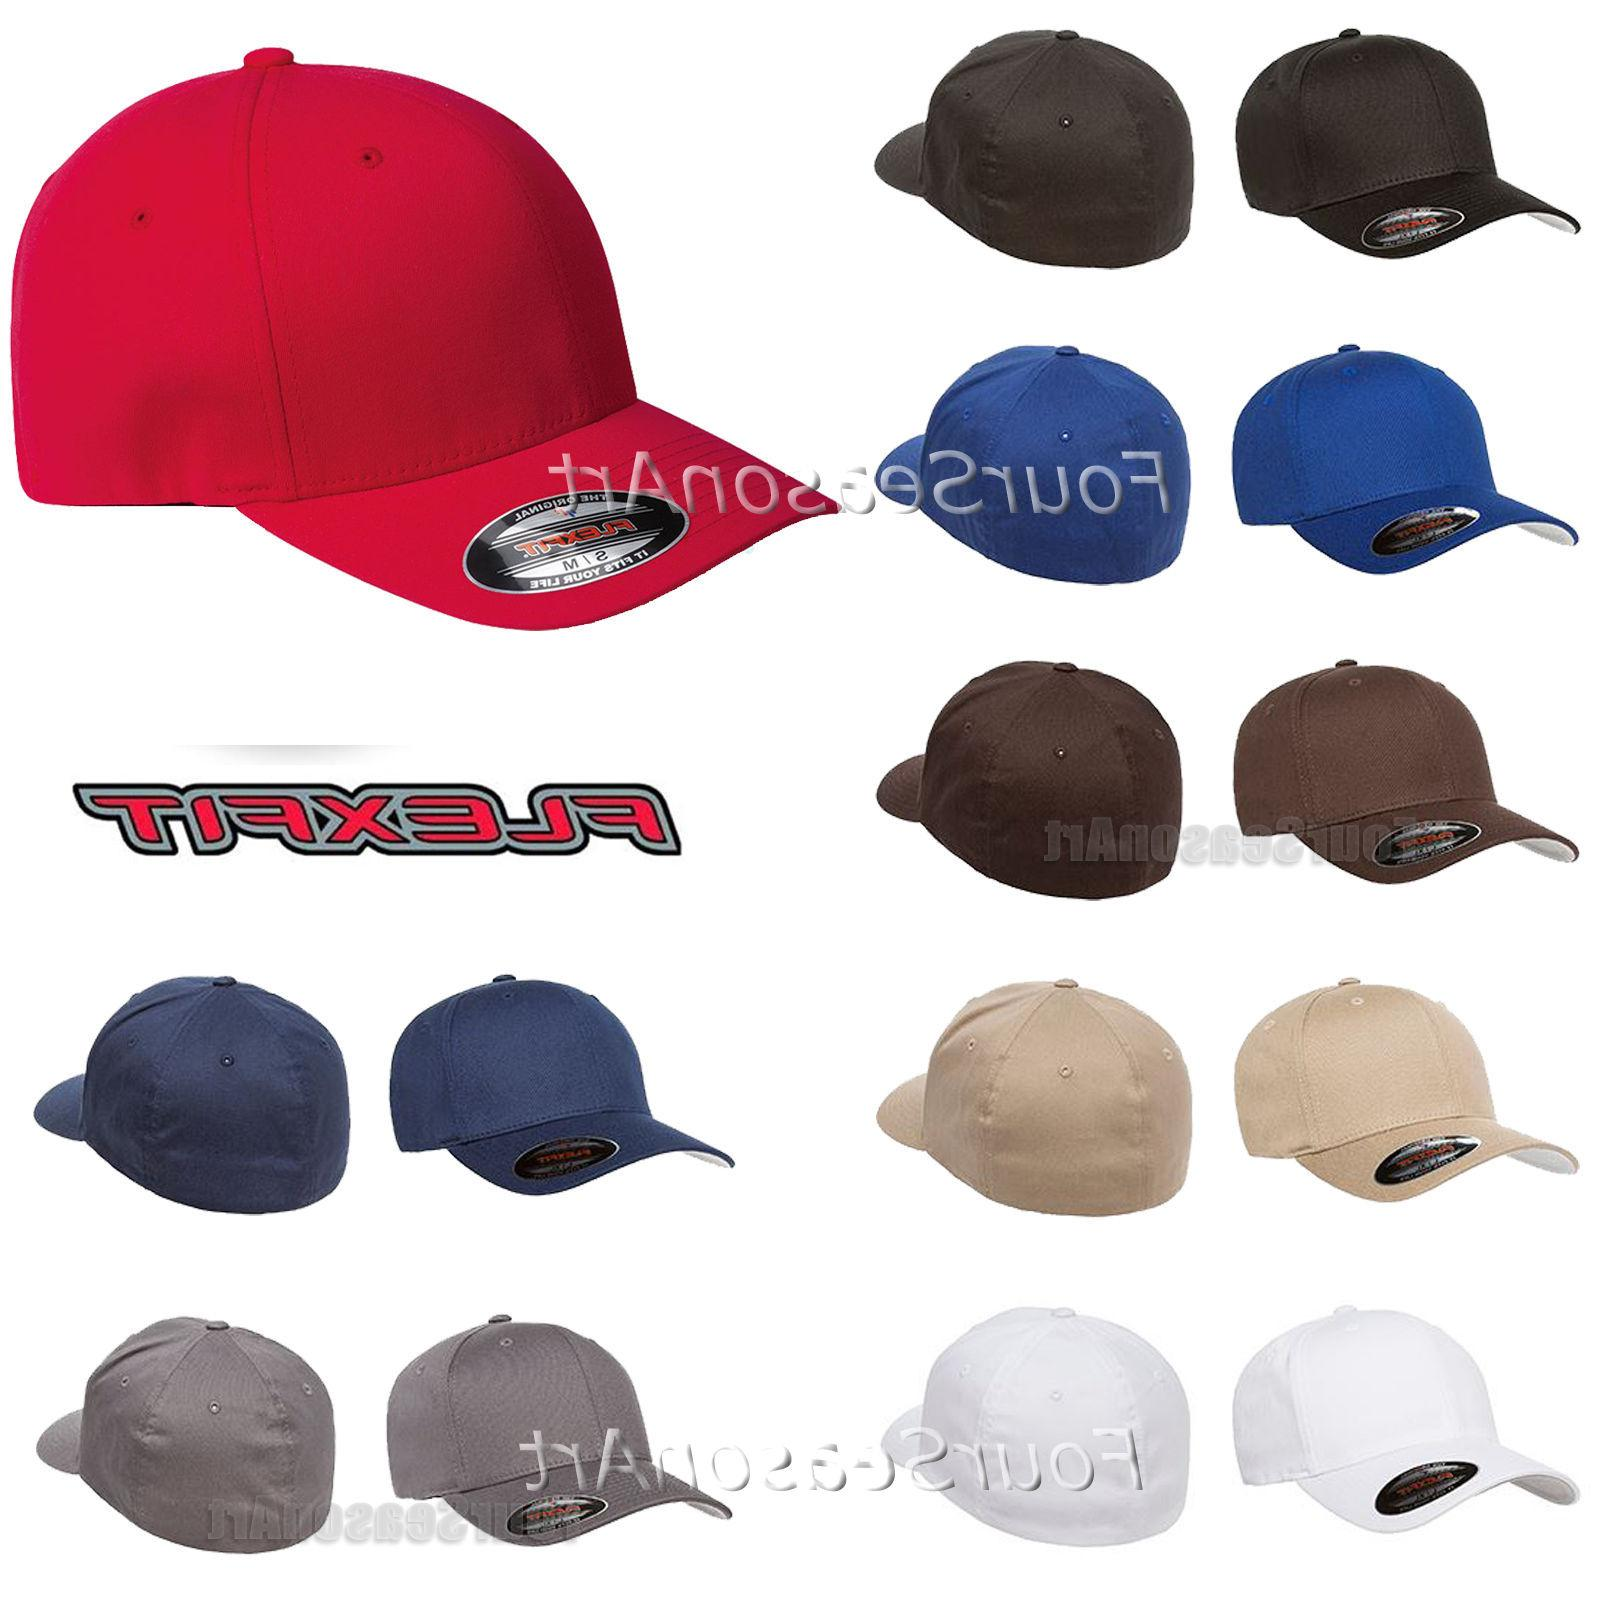 Original Flexfit Fitted Baseball Hat Wooly Combed Twill Cap